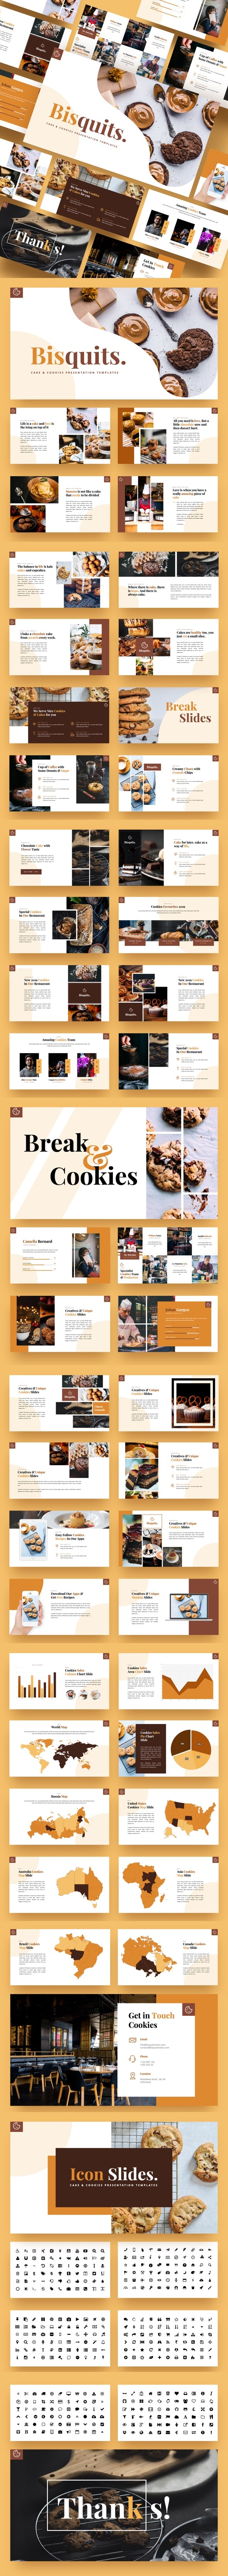 Bisquits - Cake & Cookies Keynote Template - Business Keynote Templates